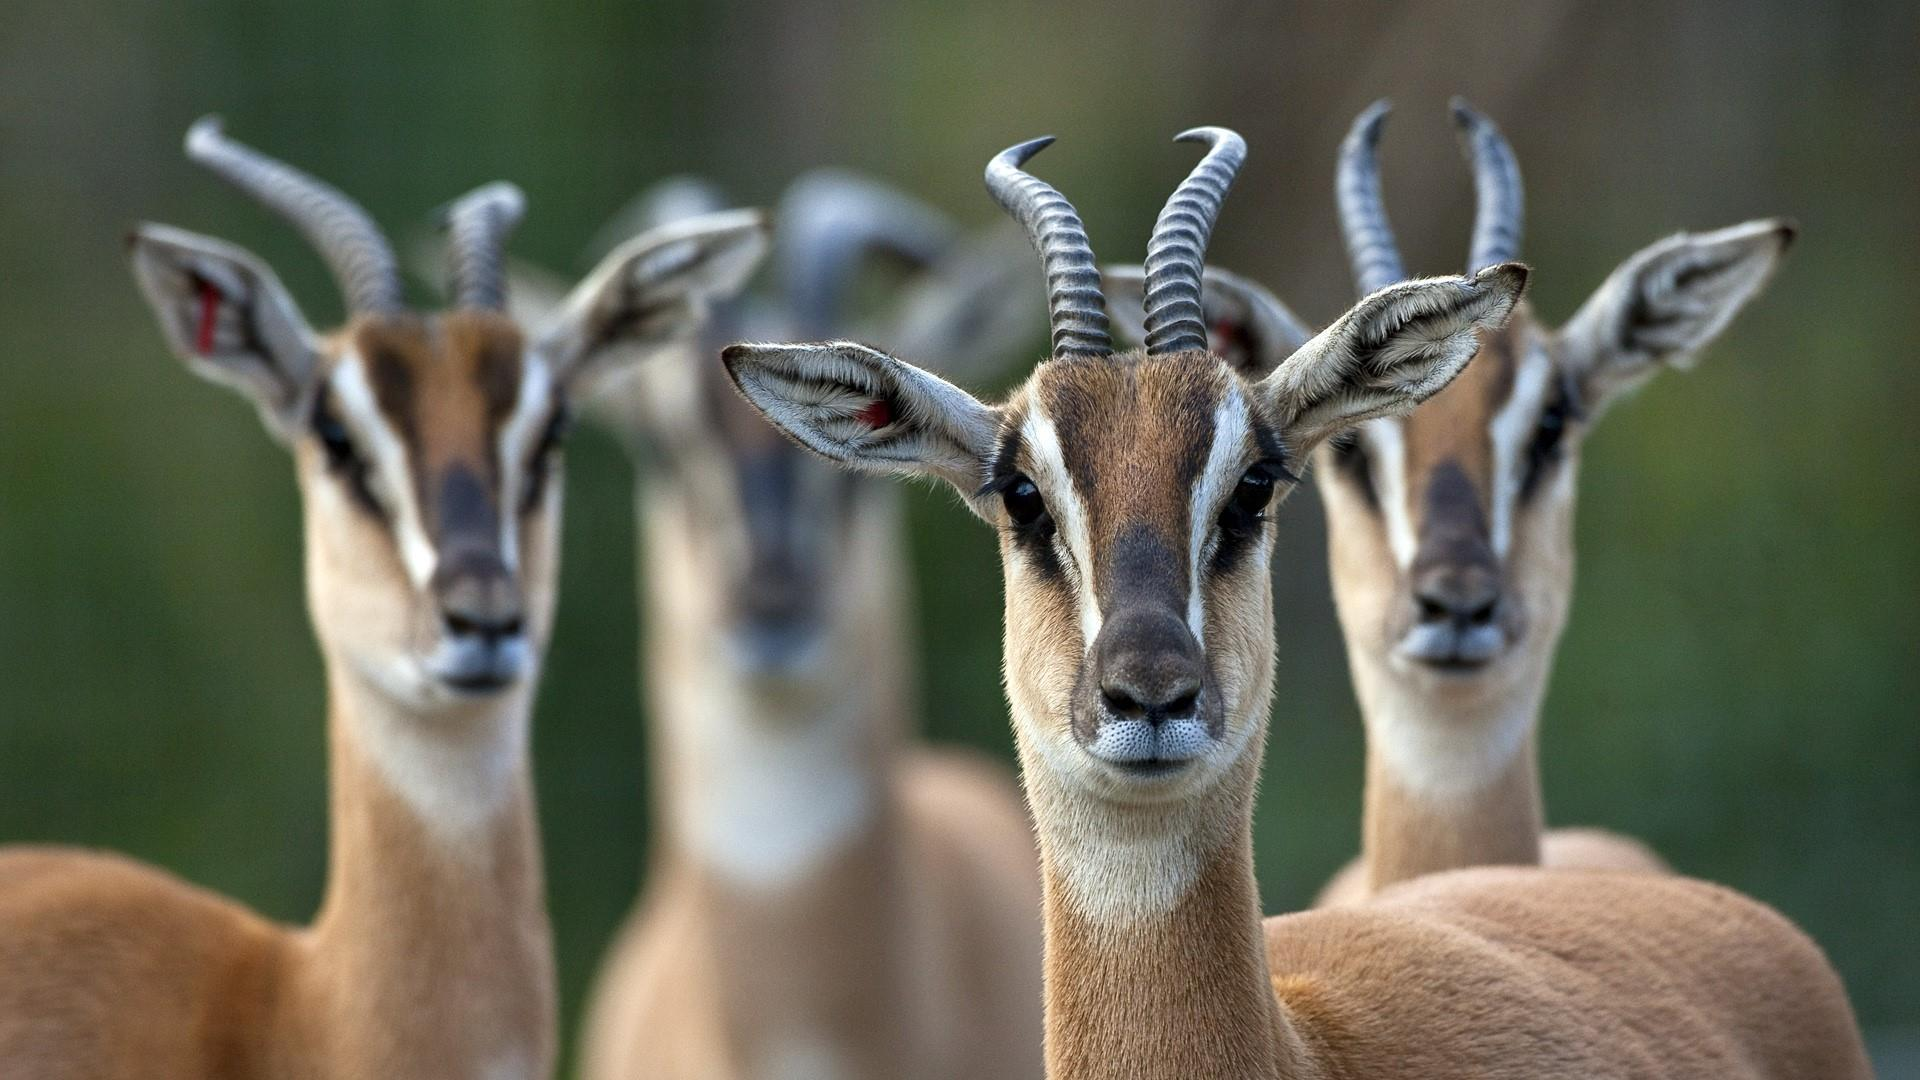 Springbok Antelopes Wallpaper | Wallpaper Studio 10 | Tens of ...